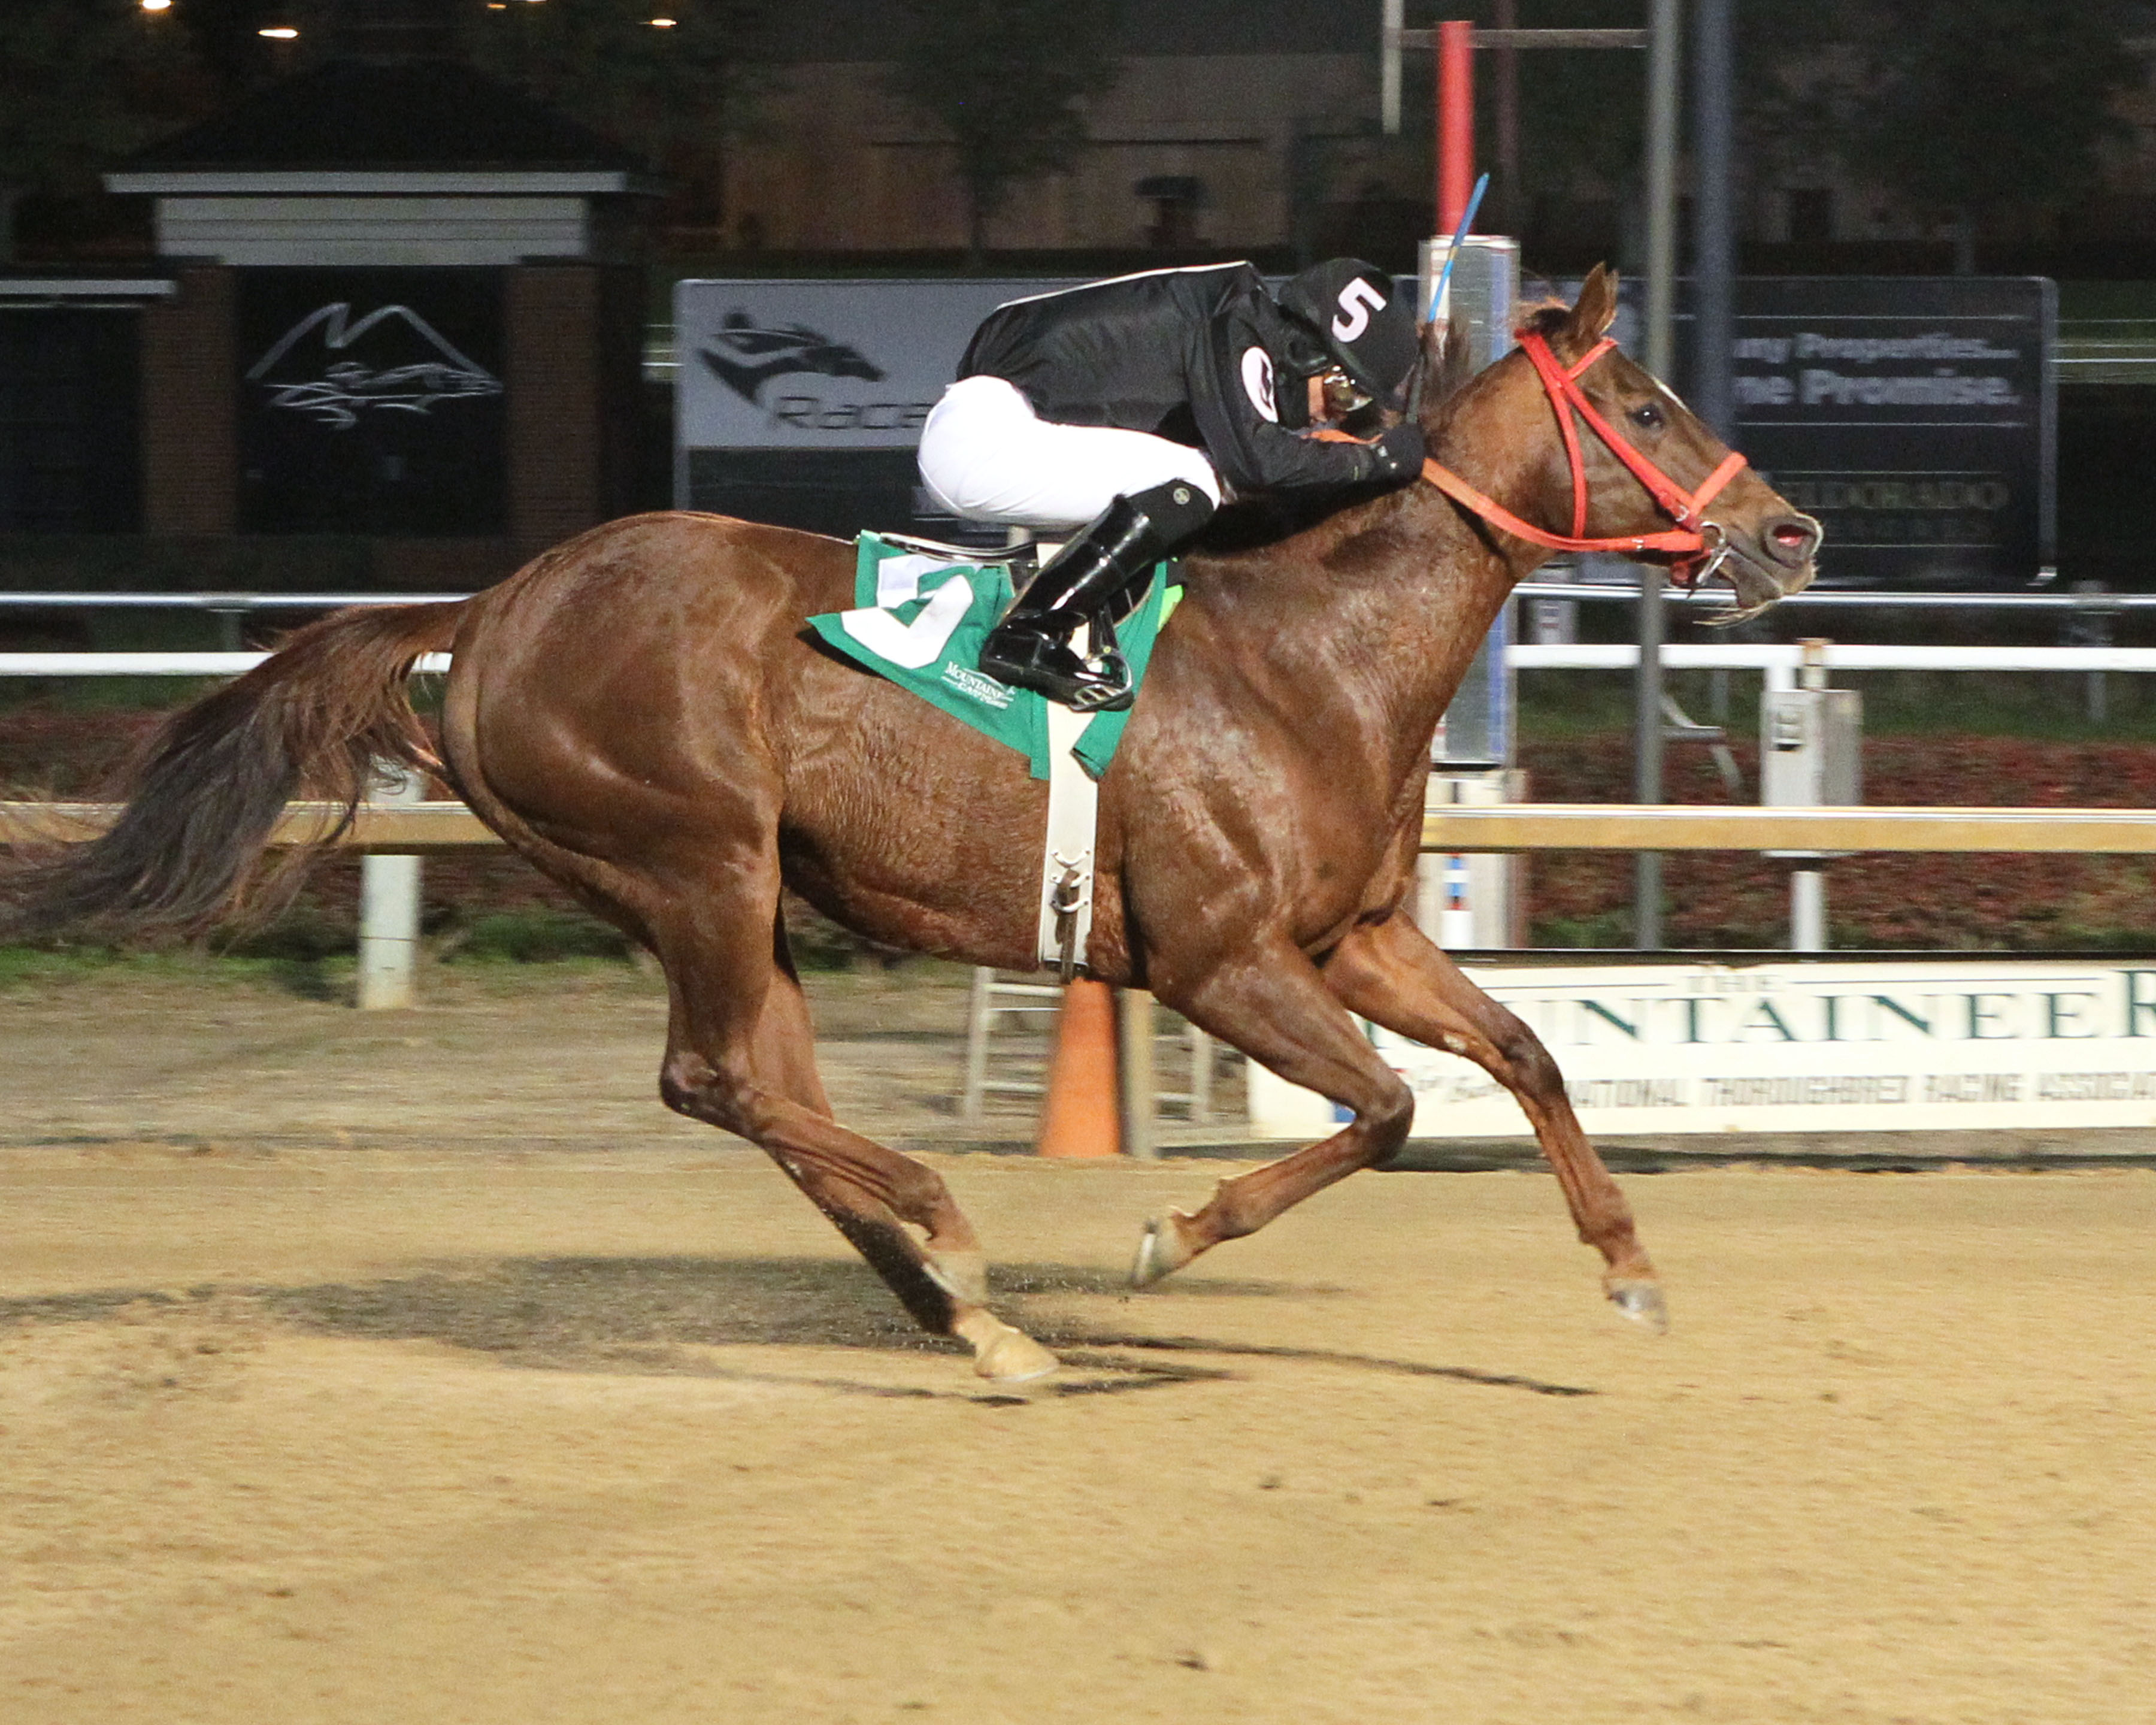 Fur Lined's win at Mountaineer November 13th got owner Amailia Cox a 25% bonus courtesy of the VTA/HBPA Mid-Atlantic incentive program. Photo by Coady Photography.